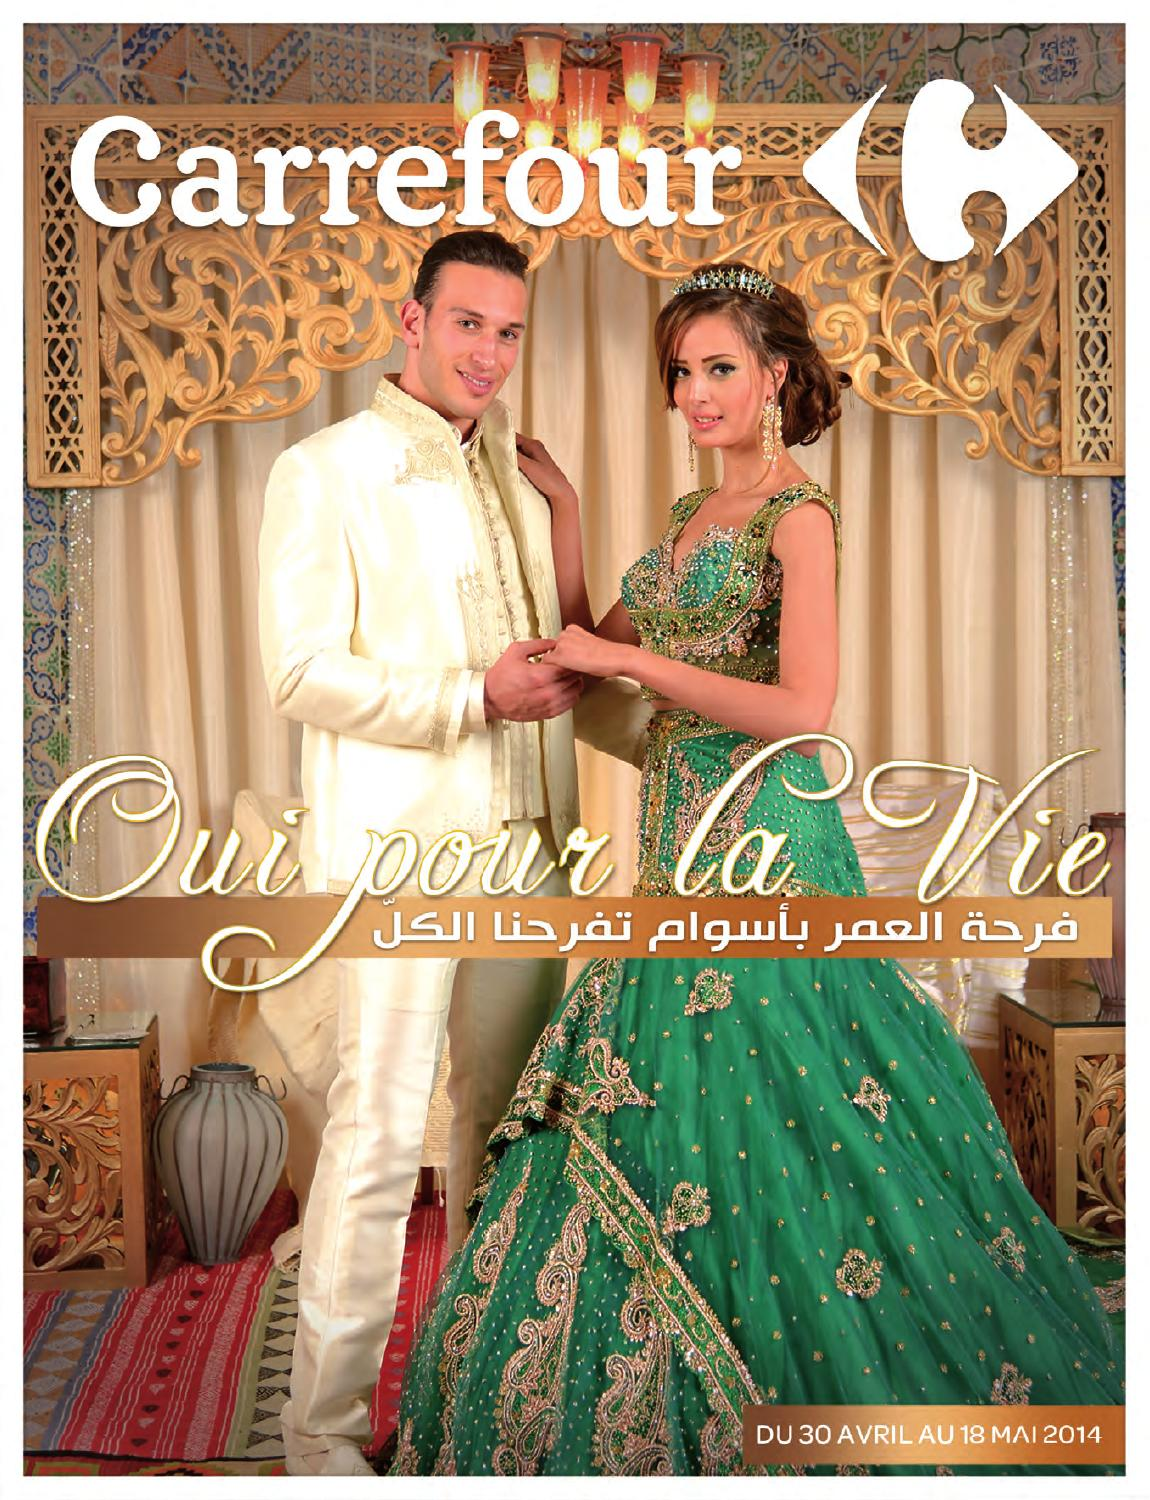 Issuu catalogue carrefour mariage 2014 by carrefour for Inter meuble tunisie catalogue 2014